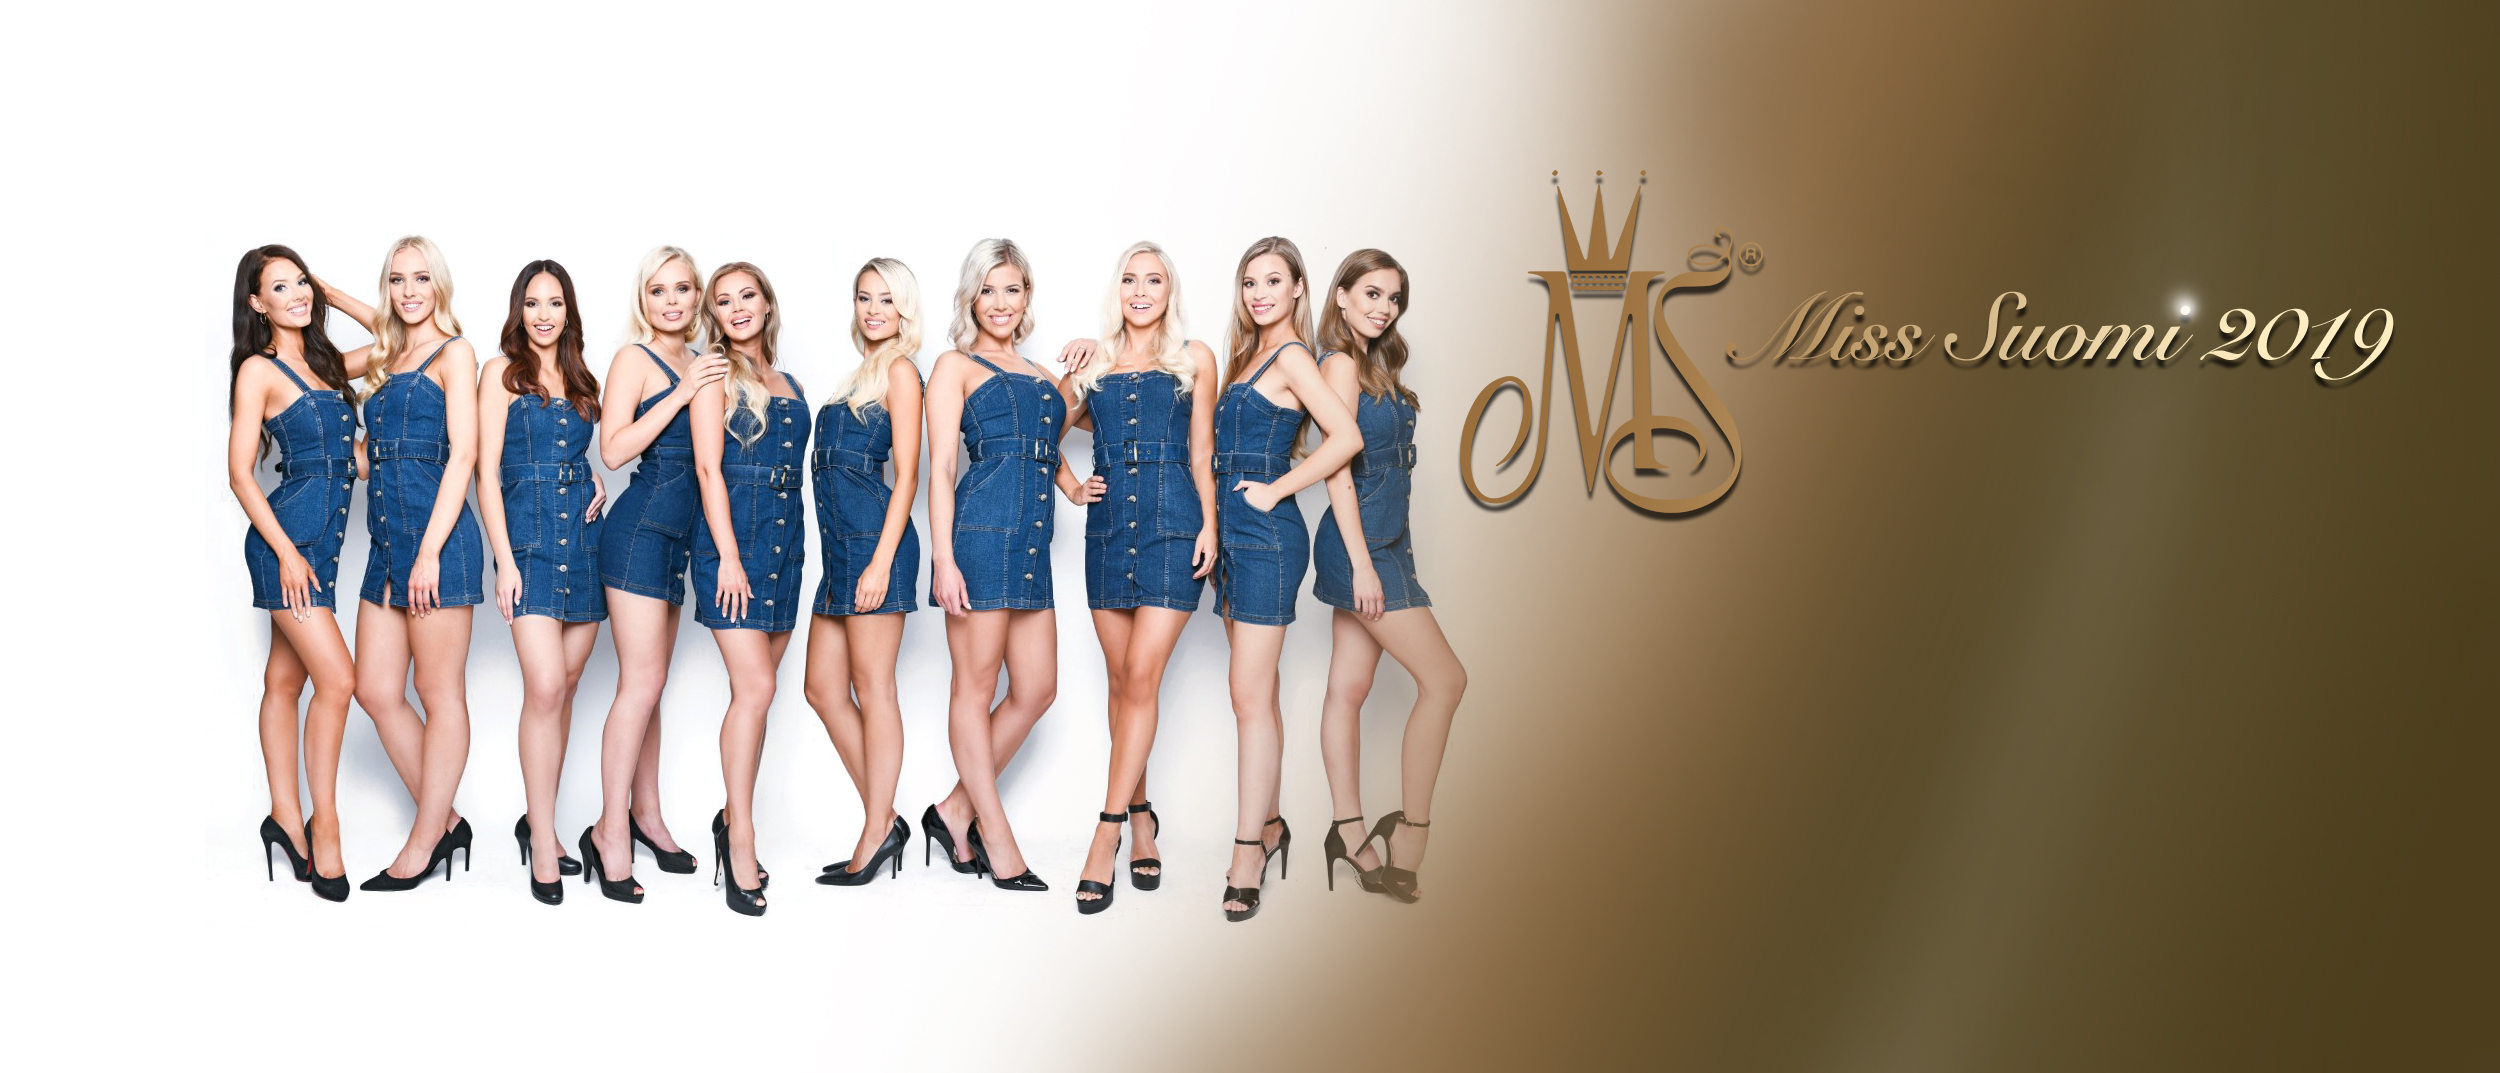 Miss Suomi 2019